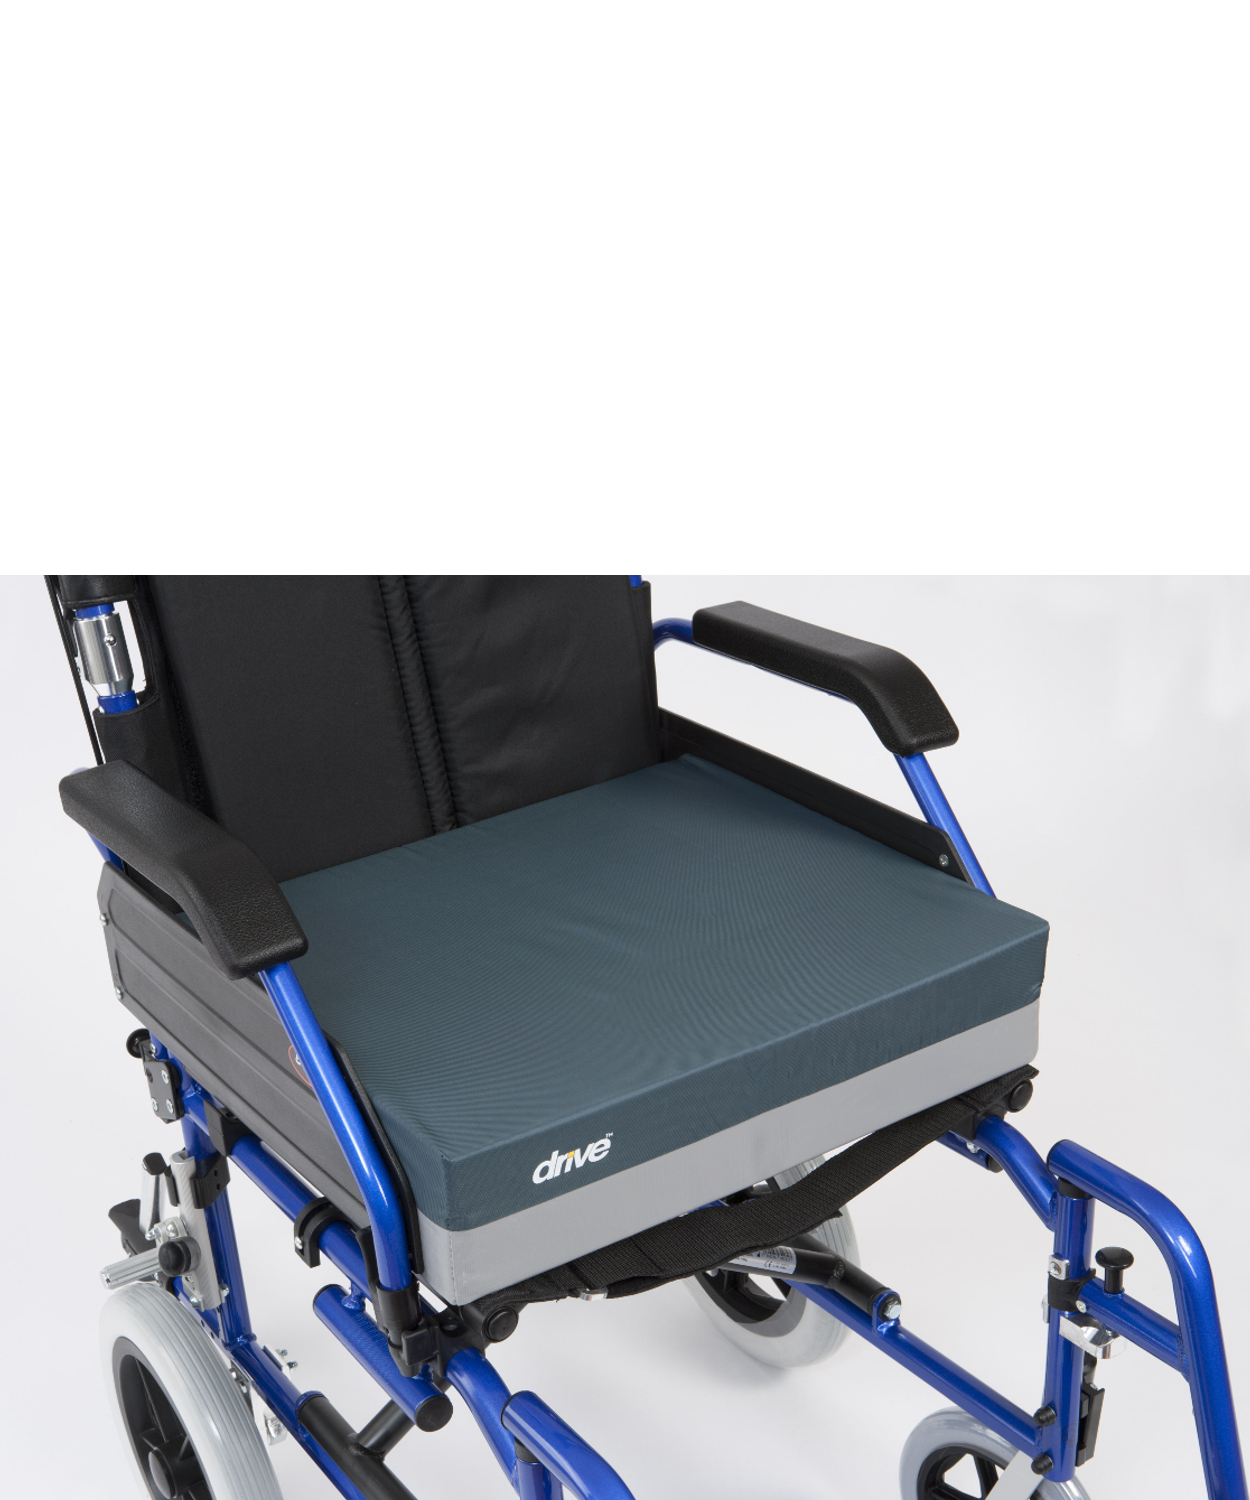 Gel Wheelchair Cushion  Prevent pressure sores and ulcers